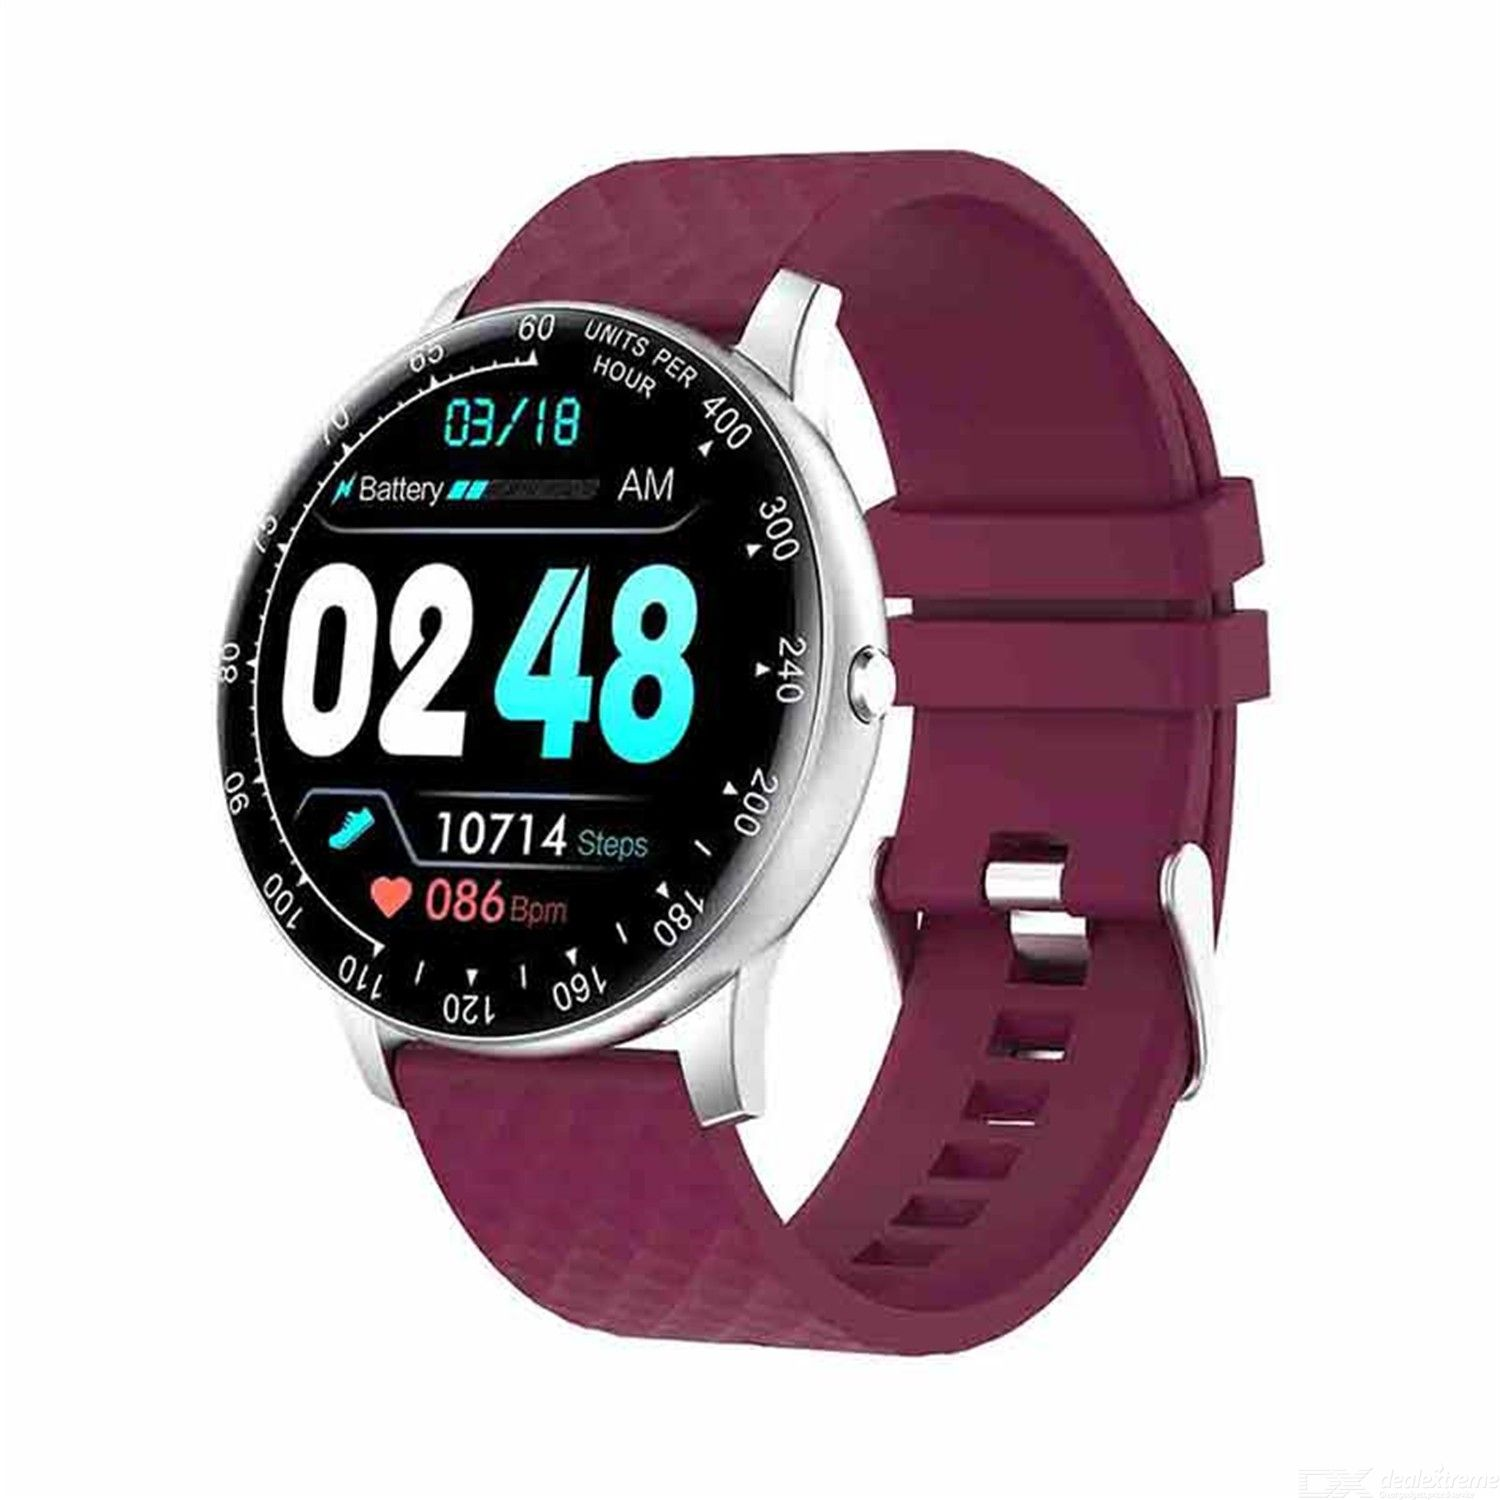 H30 custom dial off screen long bright step heart rate and blood pressure monitoring health exercise smart Watch